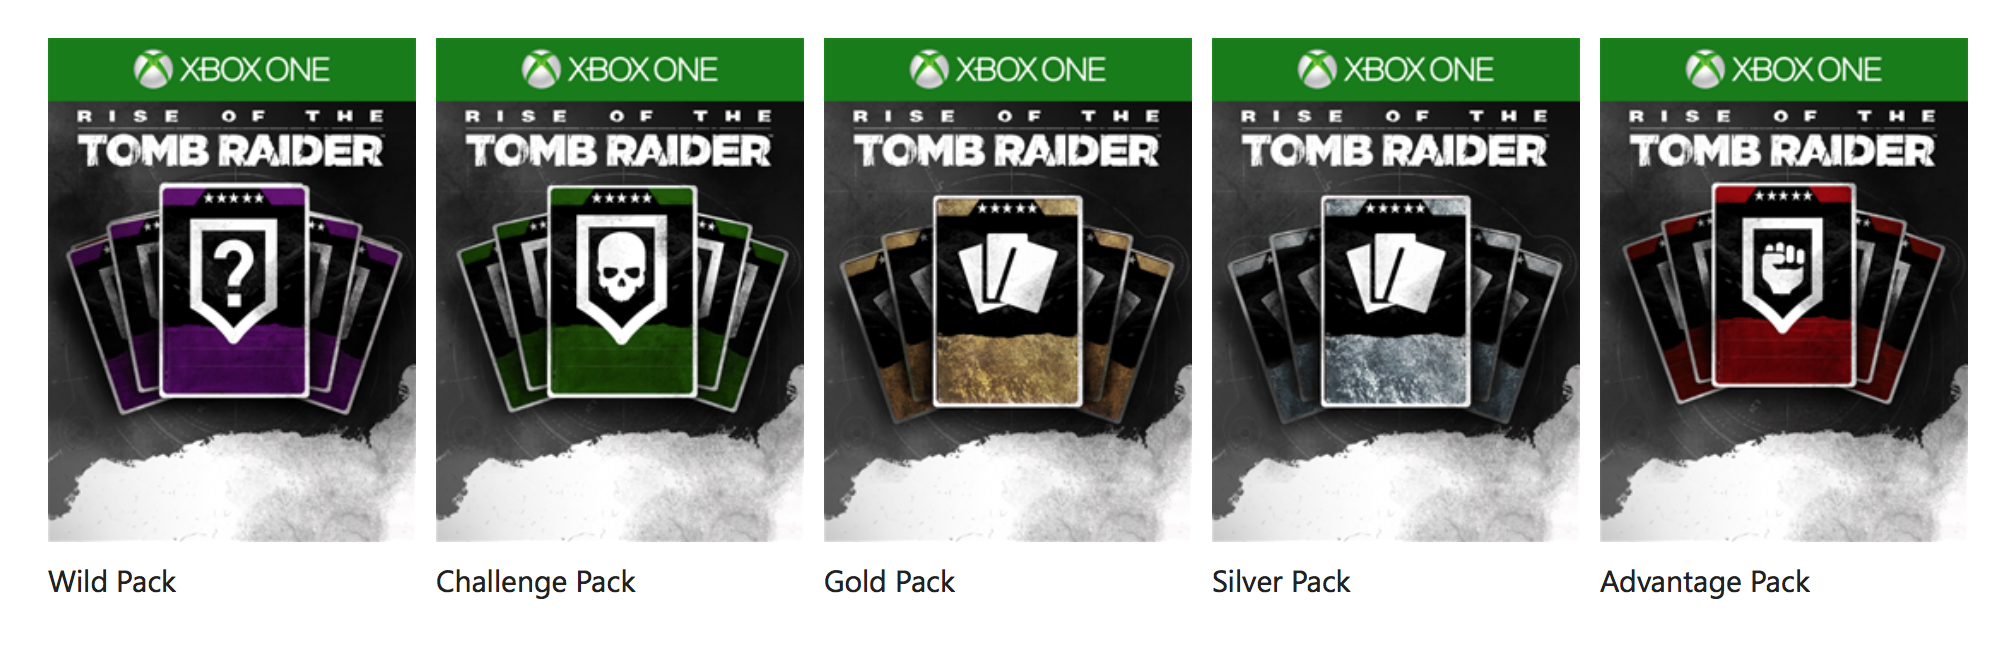 Rise Of The Tomb Raider Will Feature Card Based Microtransactions UNILAD Screen Shot 2015 10 06 at 11.24.46 PM6